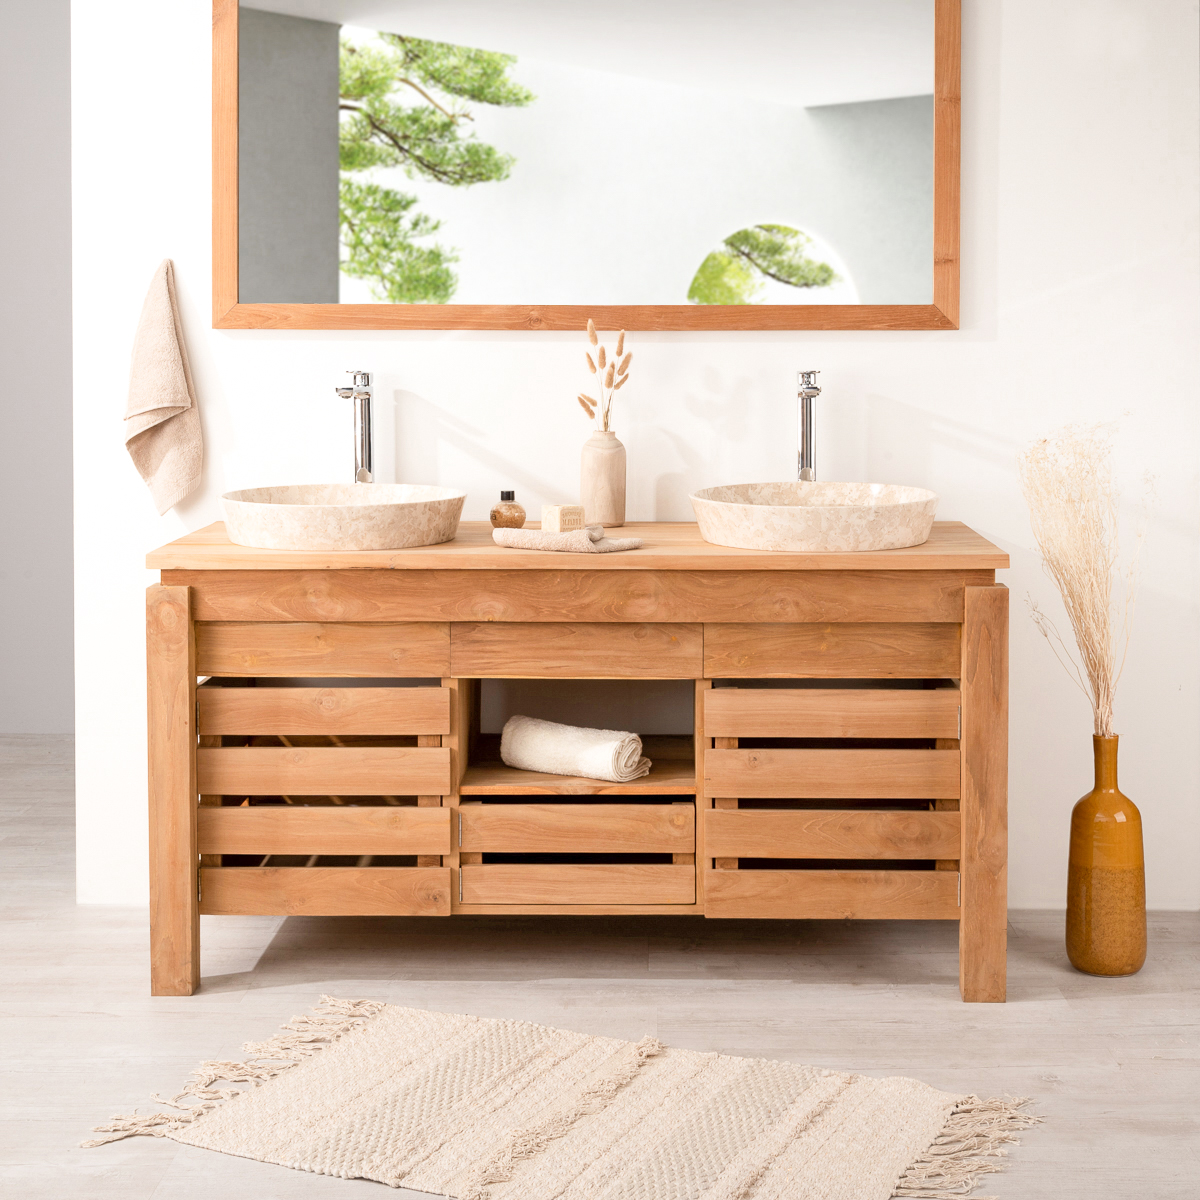 Meuble salle bain simple vasque for Meuble de salle de bain design simple vasque